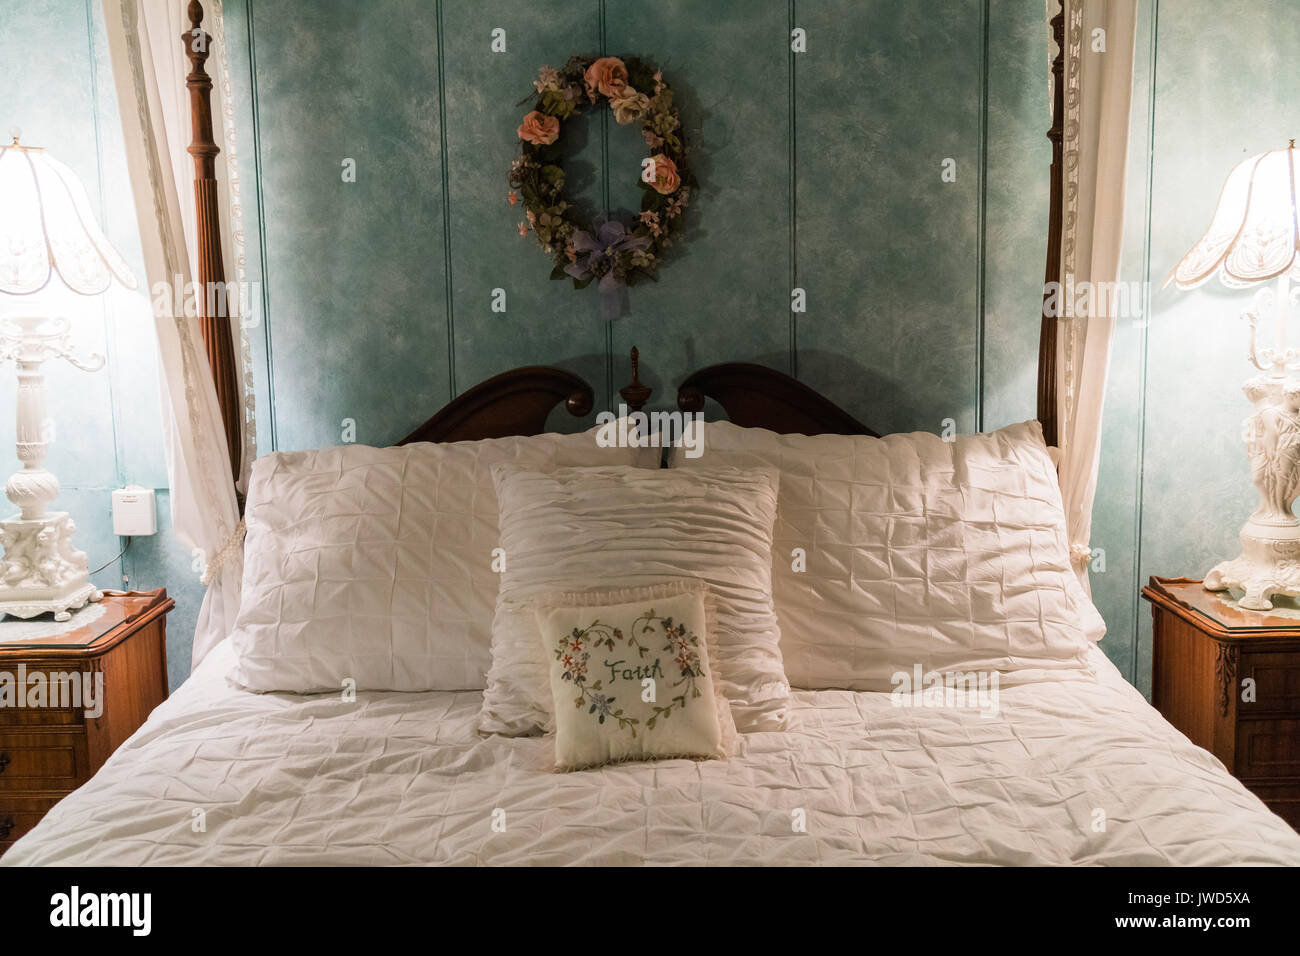 Cute vintage four poster bed and decorations in a bedroom in ...